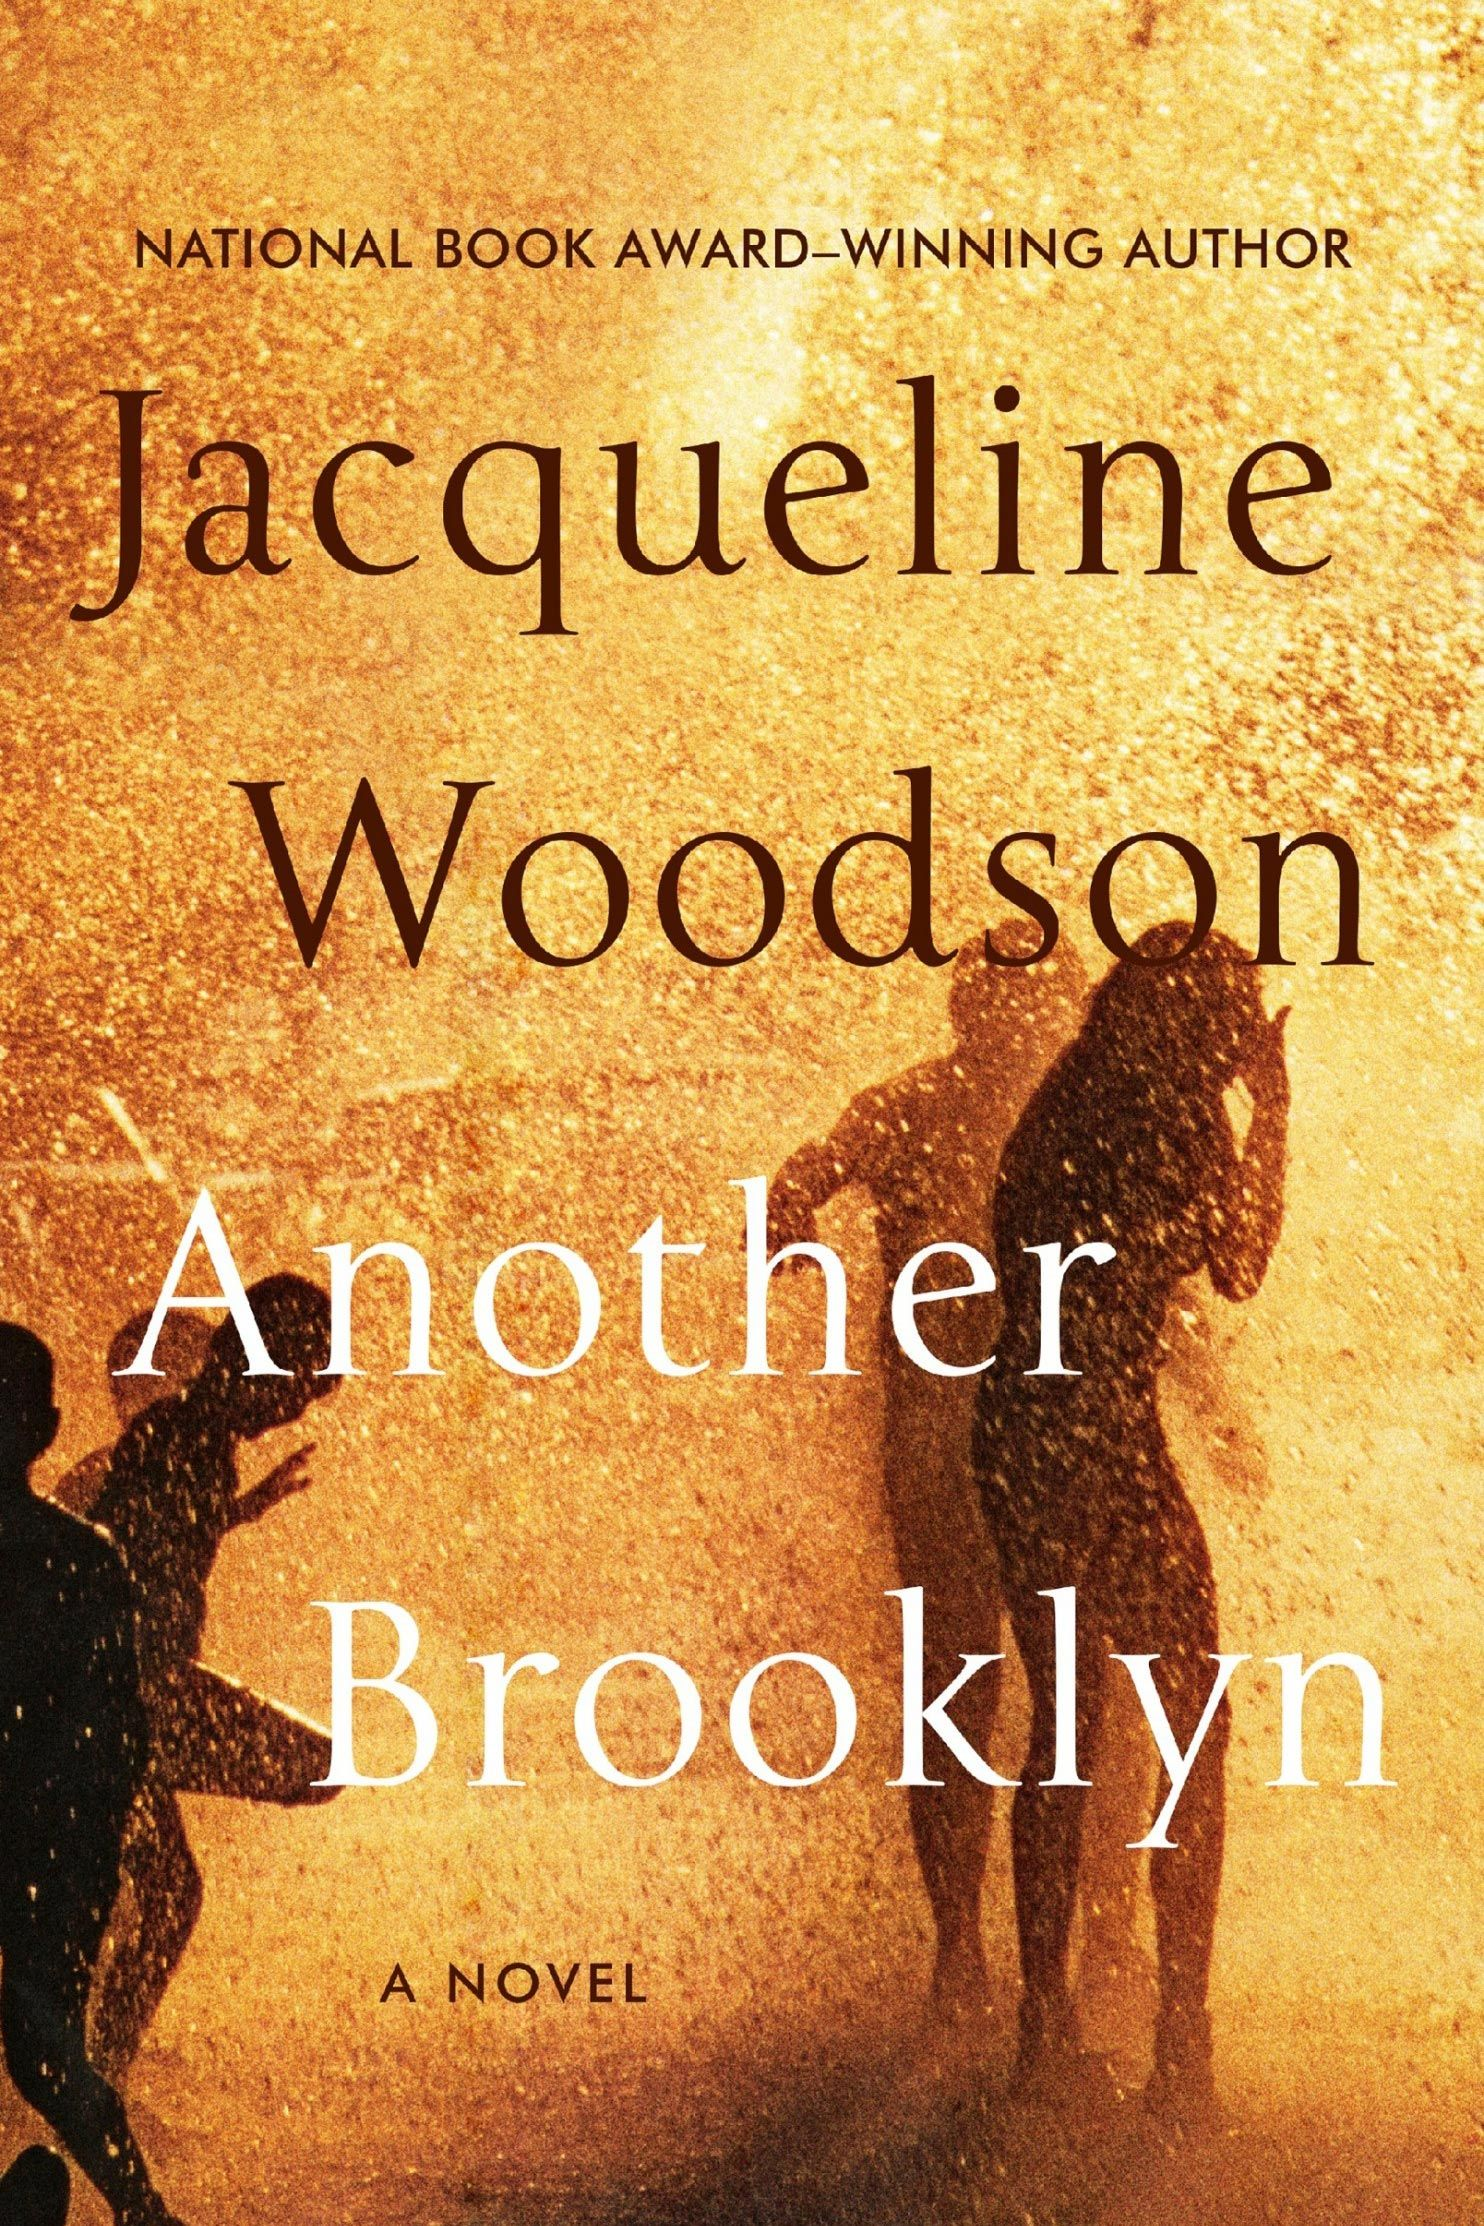 "<p>August remembers when Brooklyn was a place where she and her girls wandered the streets, believing that the future belonged to them. But there was another side to Brooklyn, a much darker one. Woodson's latest paints an exquisite picture of the hopes and risks associated with growing up.</p><p><strong data-redactor-tag=""strong"" data-verified=""redactor"">Why you'll love it: </strong><em data-redactor-tag=""em"" data-verified=""redactor"">Another Brooklyn</em> flawlessly examines the transition from youth to adulthood. </p><p><a href=""https://www.amazon.com/Another-Brooklyn-Thorndike-African-American/dp/1410494608/ref=tmm_hrd_swatch_0?_encoding=UTF8&qid=1481655028&sr=1-1&tag=redbook_auto-append-20"" target=""_blank"" class=""slide-buy--button"" data-tracking-id=""recirc-text-link"">BUY NOW</a> </p><p><strong data-redactor-tag=""strong"" data-verified=""redactor"">RELATED: <a href=""http://www.redbookmag.com/life/features/g3842/20-books-to-gift-this-christmas/"" target=""_blank"" data-tracking-id=""recirc-text-link"">20 Books People Will Actually Be Happy to Get This Christmas</a><span class=""redactor-invisible-space"" data-verified=""redactor"" data-redactor-tag=""span"" data-redactor-class=""redactor-invisible-space""><a href=""http://www.redbookmag.com/life/features/g3842/20-books-to-gift-this-christmas/""></a></span></strong><br></p>"